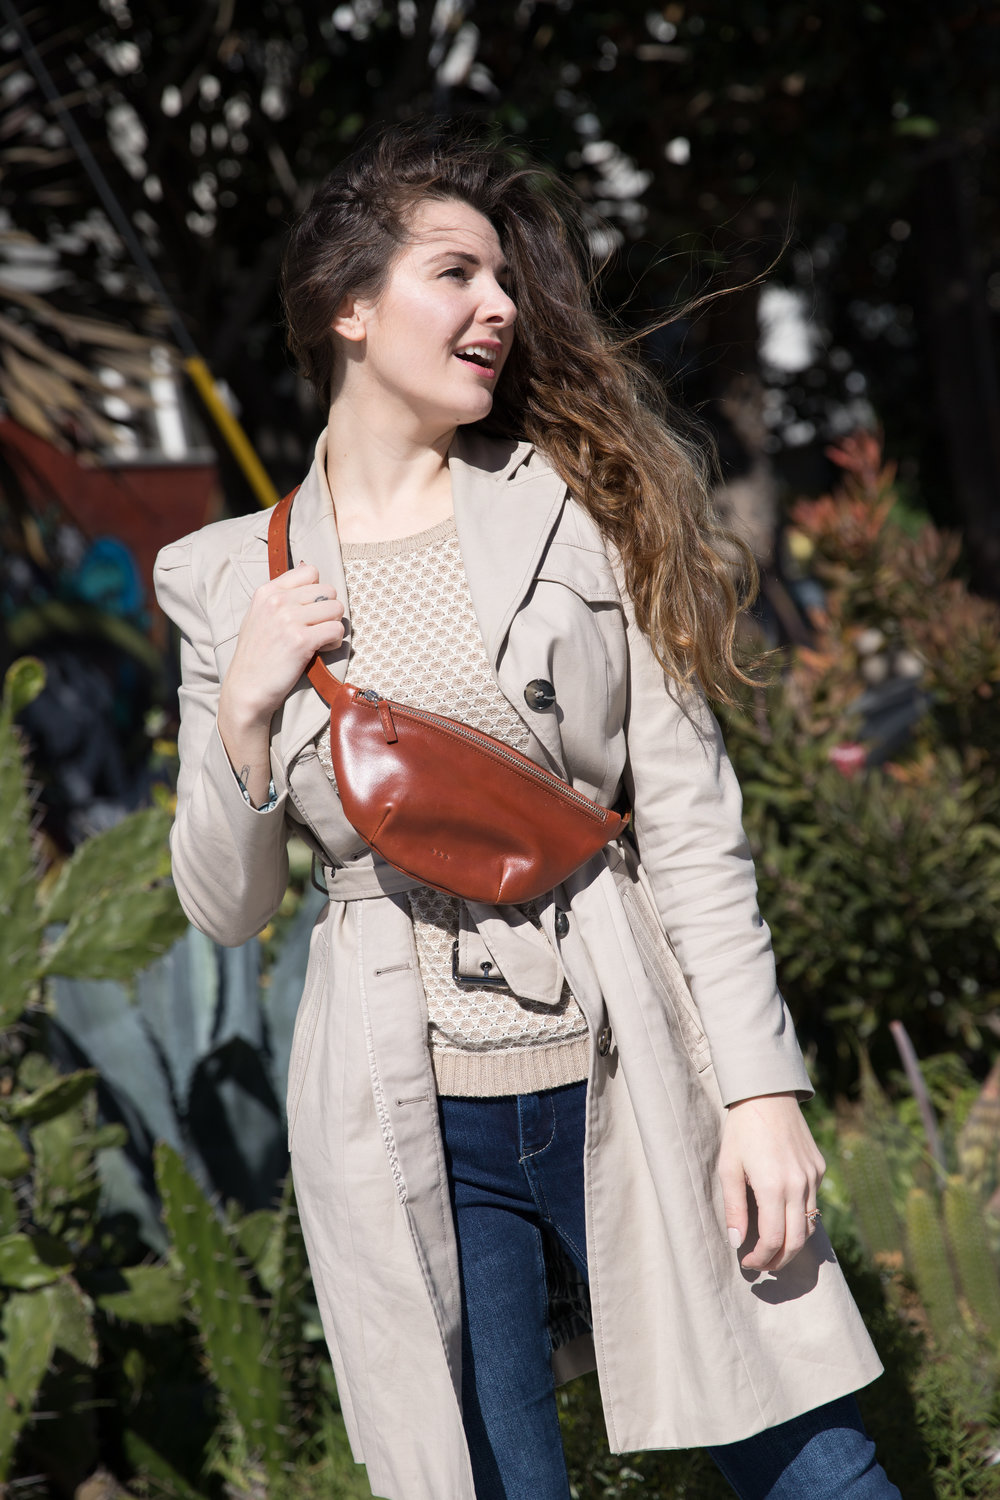 the Sling Bag trend